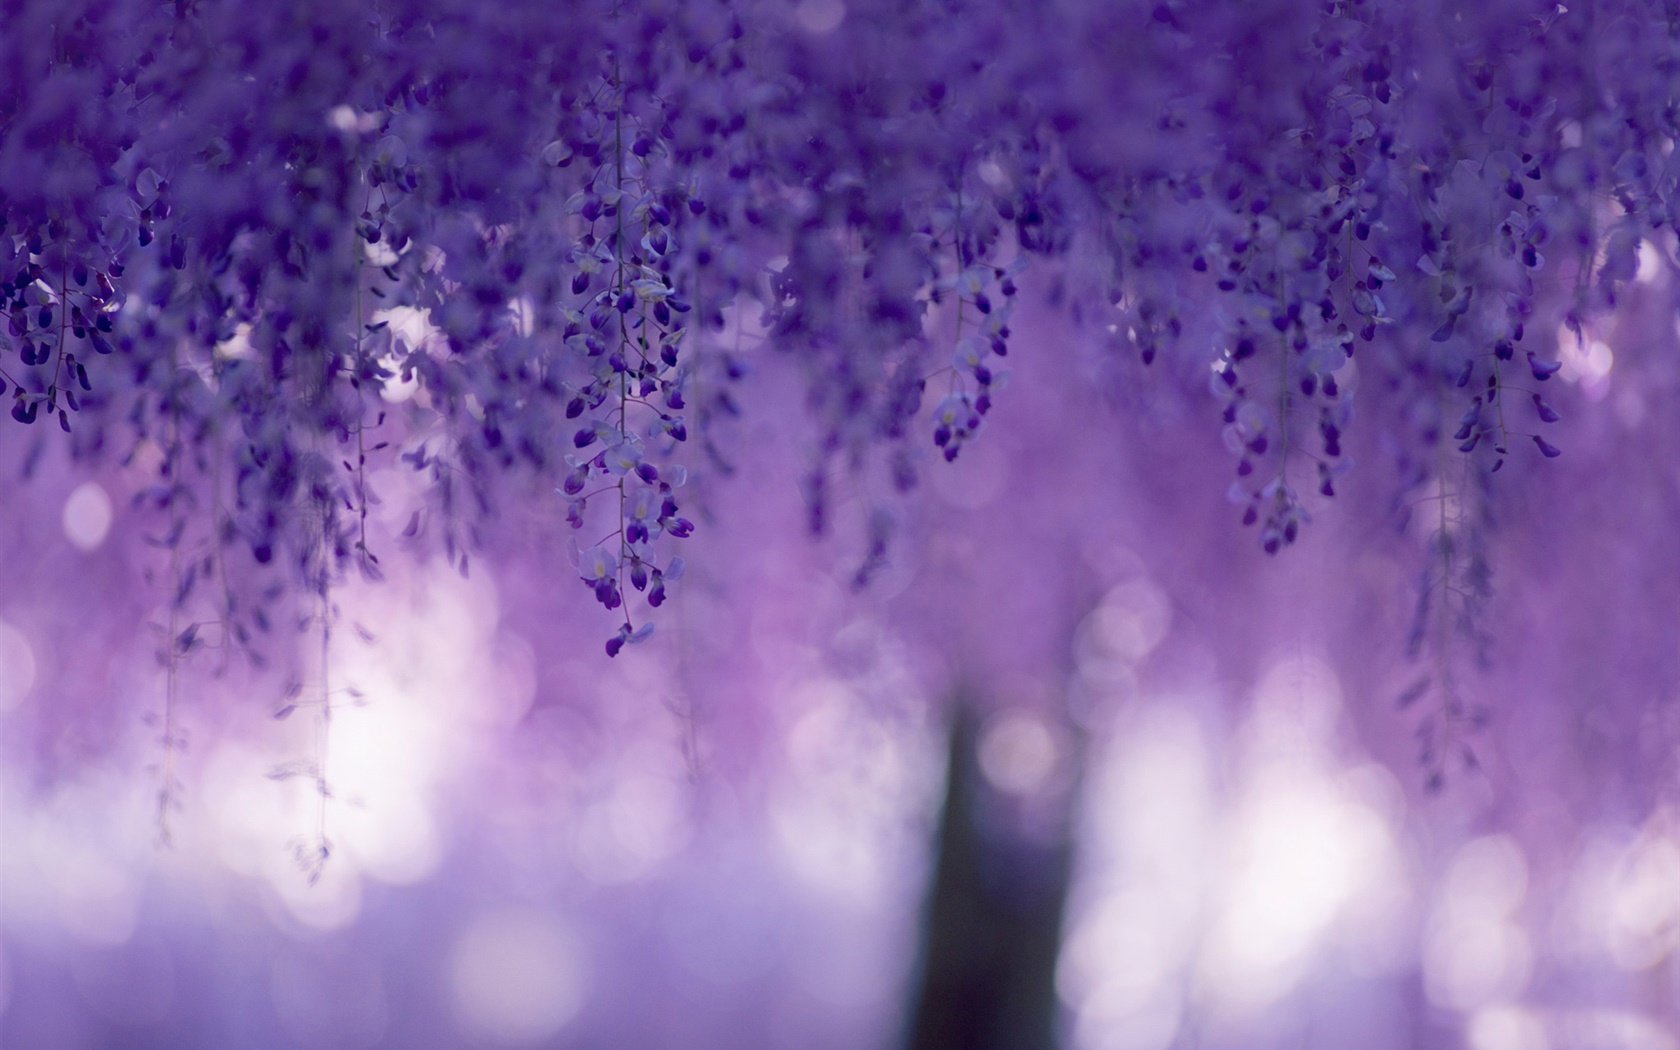 Wisteria, purple flowers, curtains 1680x1050 wallpaper